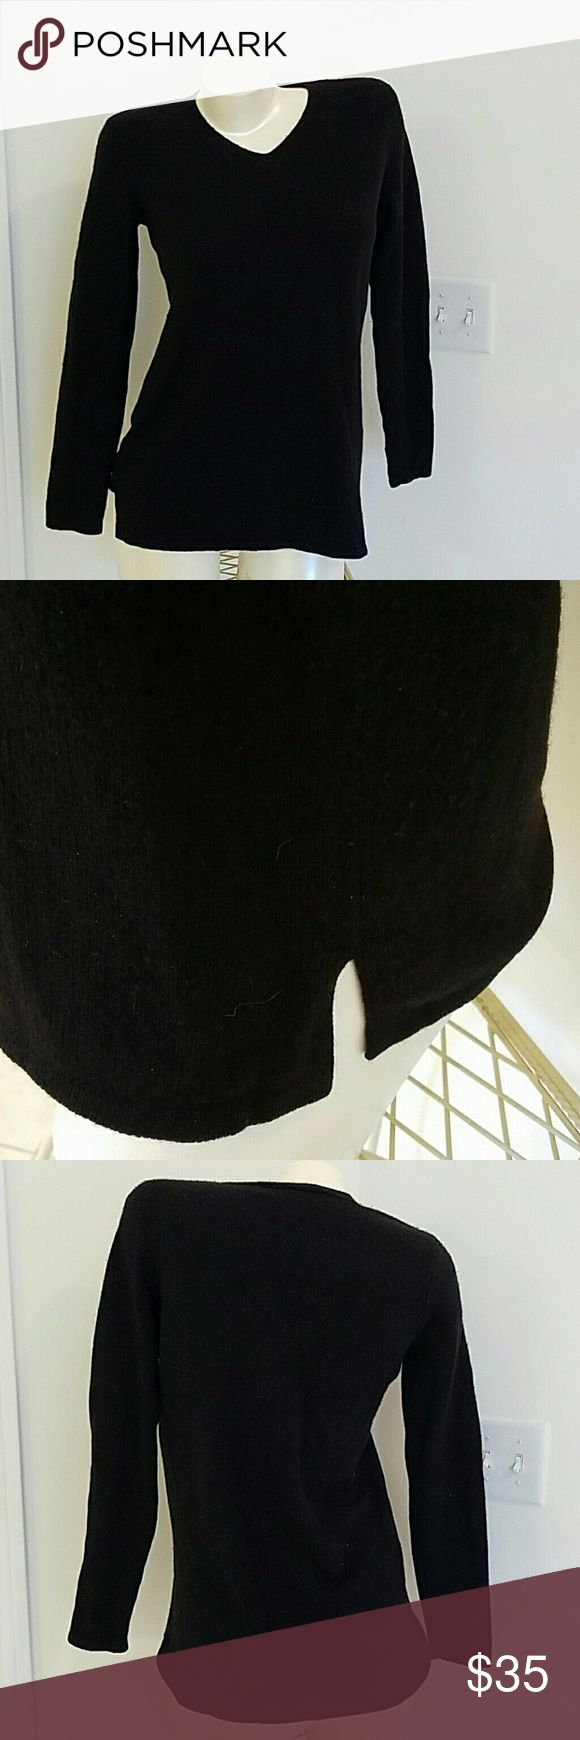 SAKS FIFTH AVE  Petites Black cashmere Saks Fifth Avenue Petites sweater good used condition no holes,smells ect. Soft and cozy.Winter is around, the corner. P  fits XS. Saks Fifth Avenue Sweaters Crew & Scoop Necks